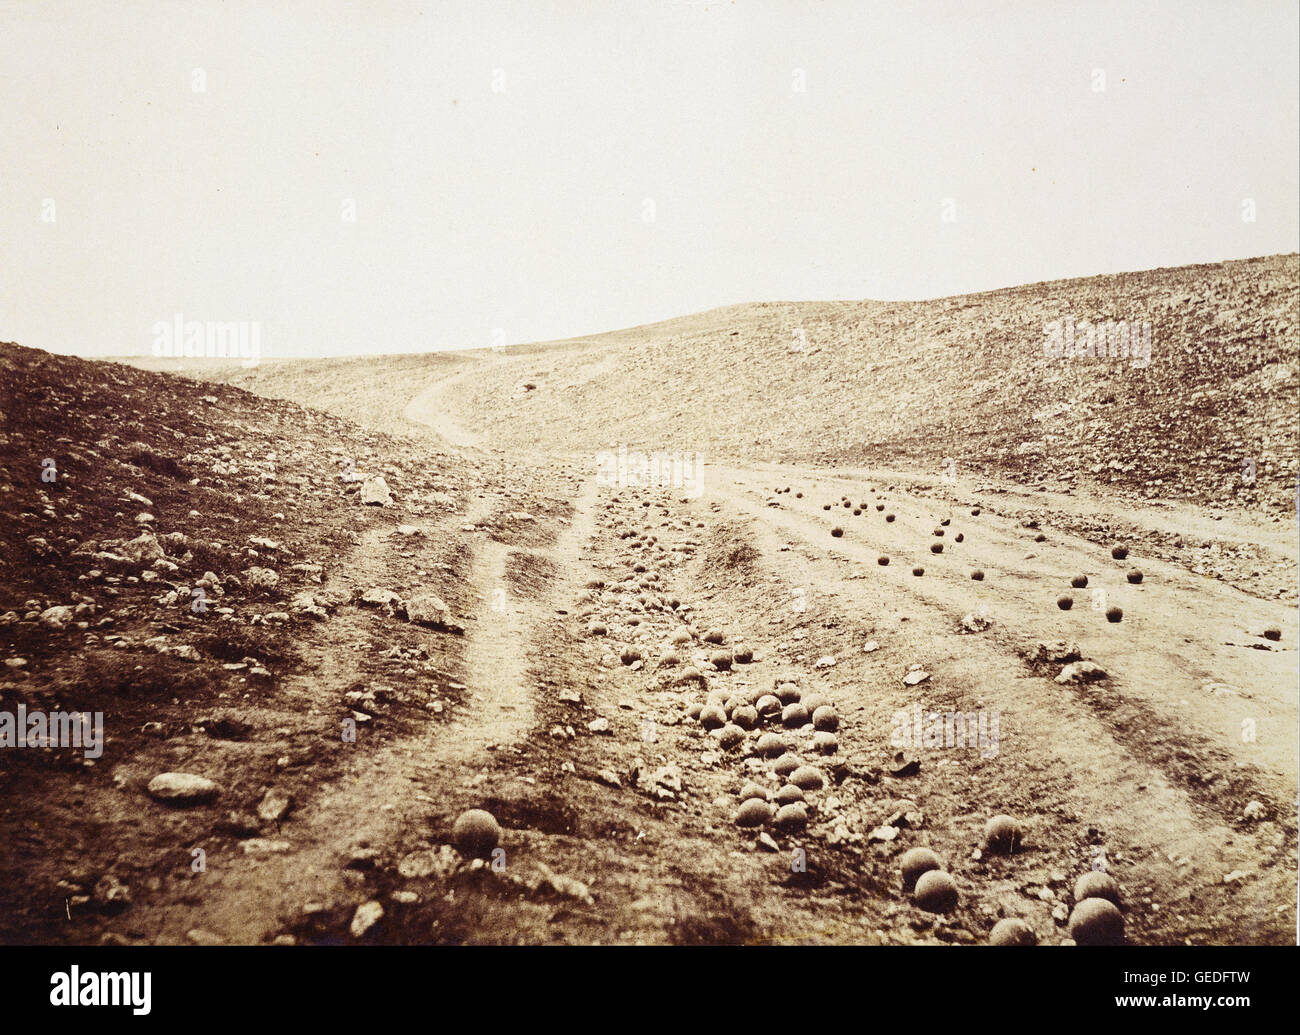 Roger Fenton - The Valley of the Shadow of Death - Stock Image